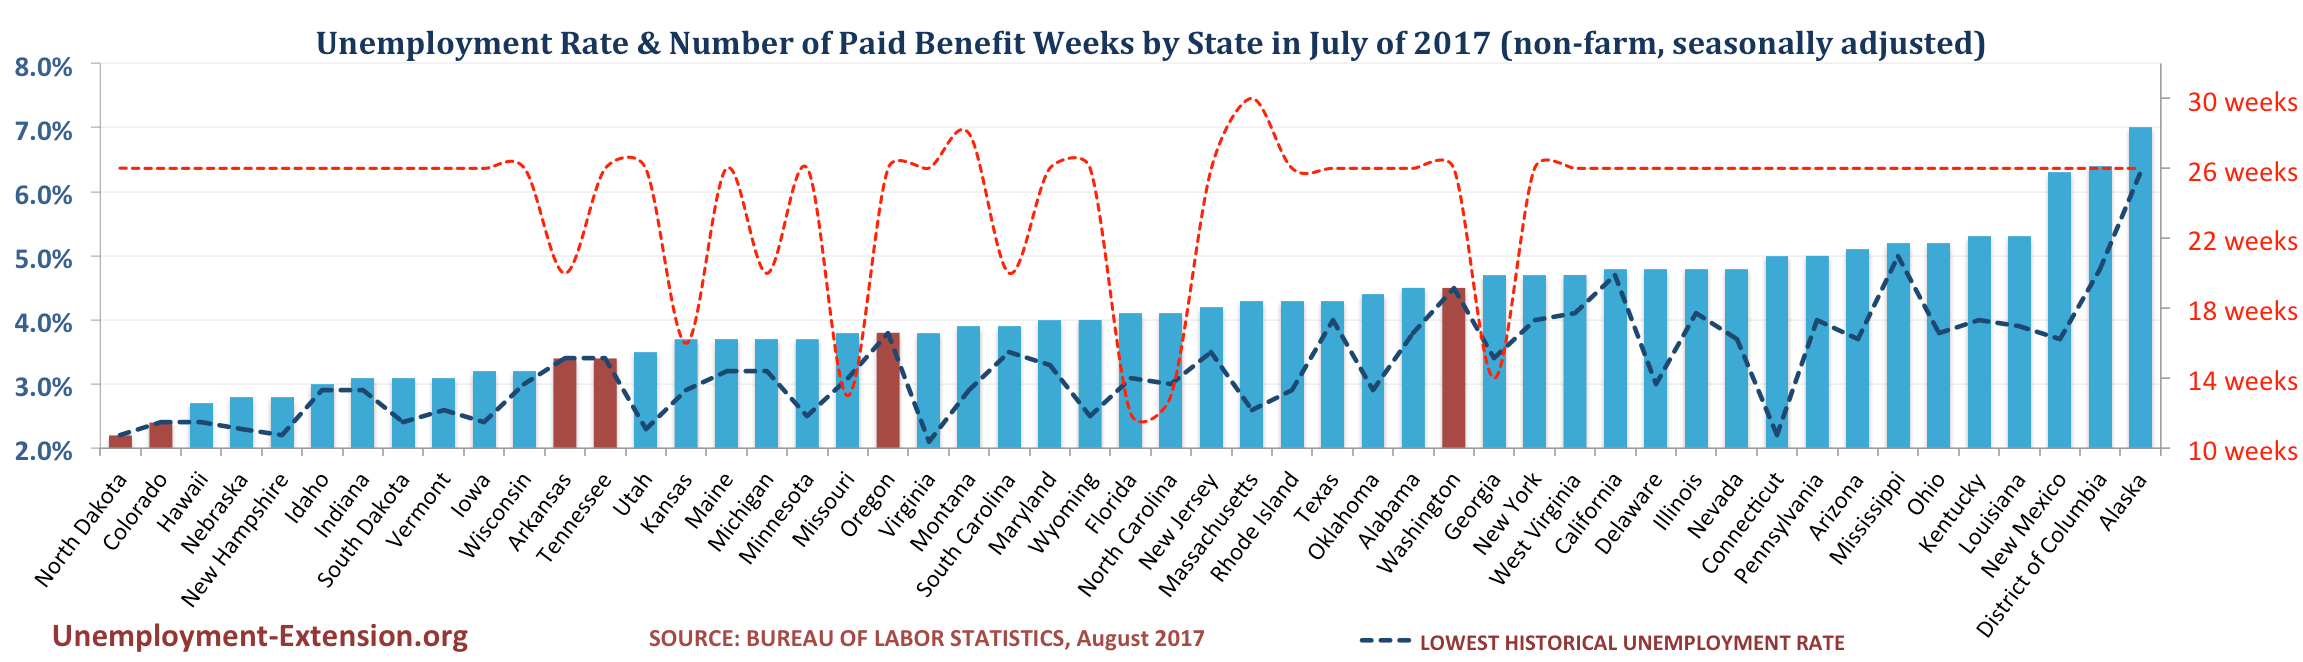 Unemployment Rate and Number of Paid Unemployment Benefit weeks by State (non-farm, seasonally adjusted) in August of 2017